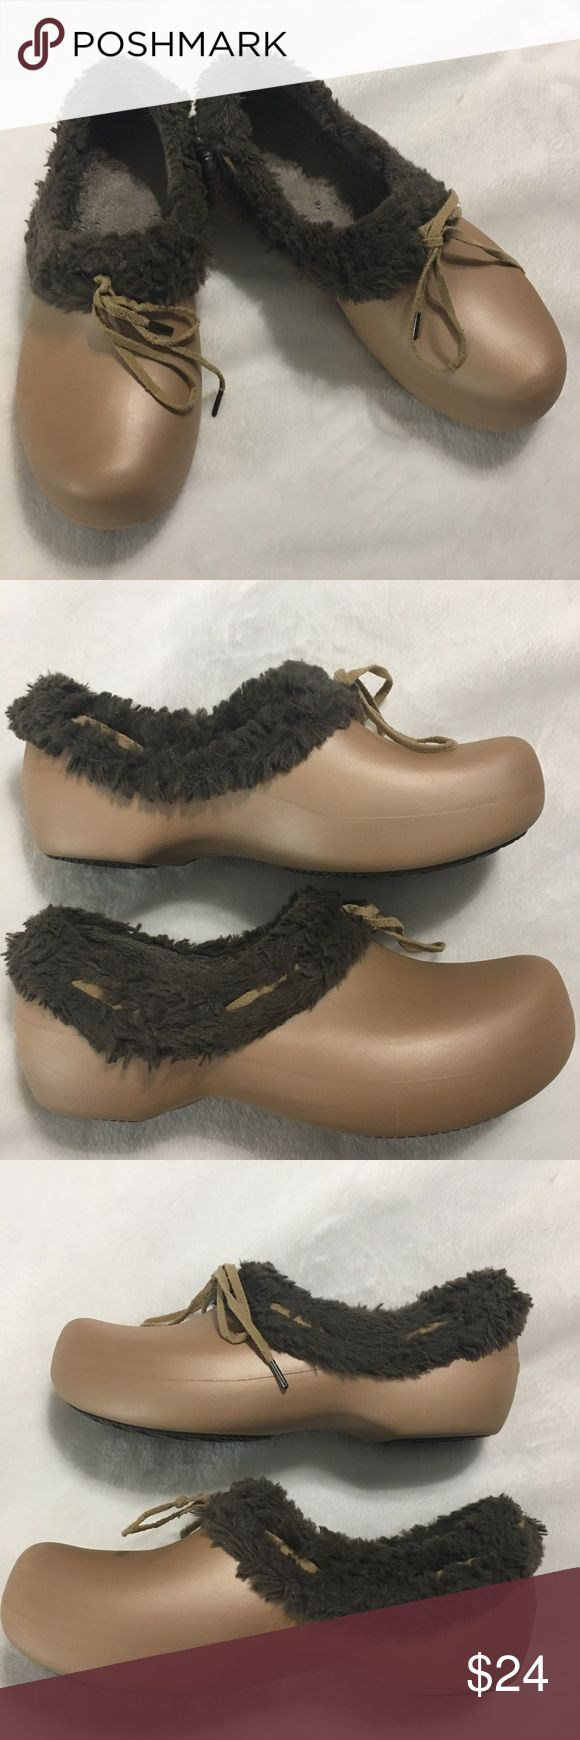 Women's Crocs Fur Lined Slip On Clogs Size 10W This is a pair of women's Crocs. These Crocs are a Golden Beige in color, Slip On, Fur Lined Clogs with lace. They are still in excellent gently used condition with very little signs of ware. Please take a look at all photos for condition and if you have any questions feel free to ask. CROCS Shoes Mules & Clogs